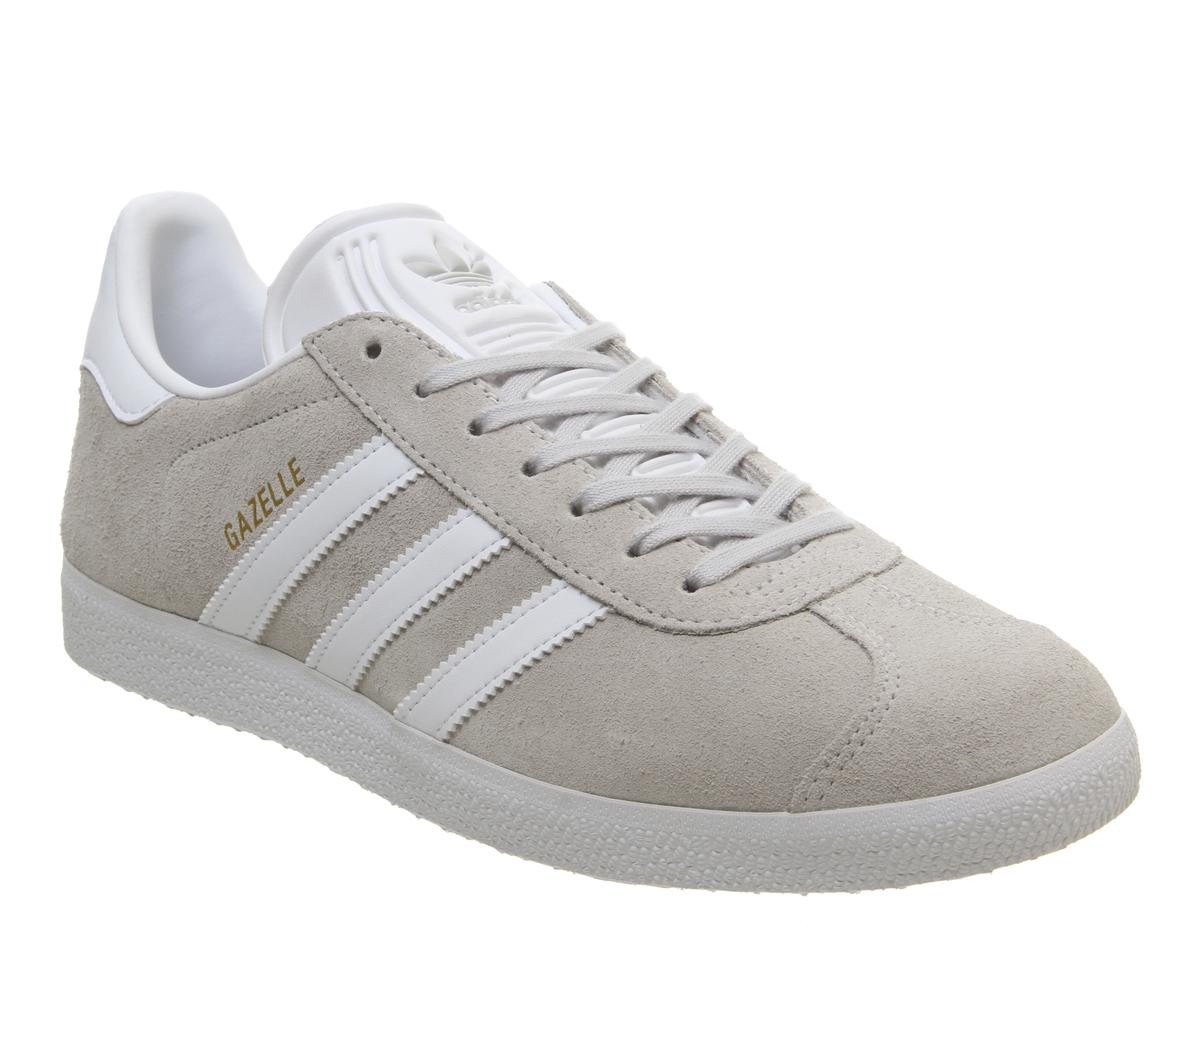 grey gazelle trainers buy clothes shoes online